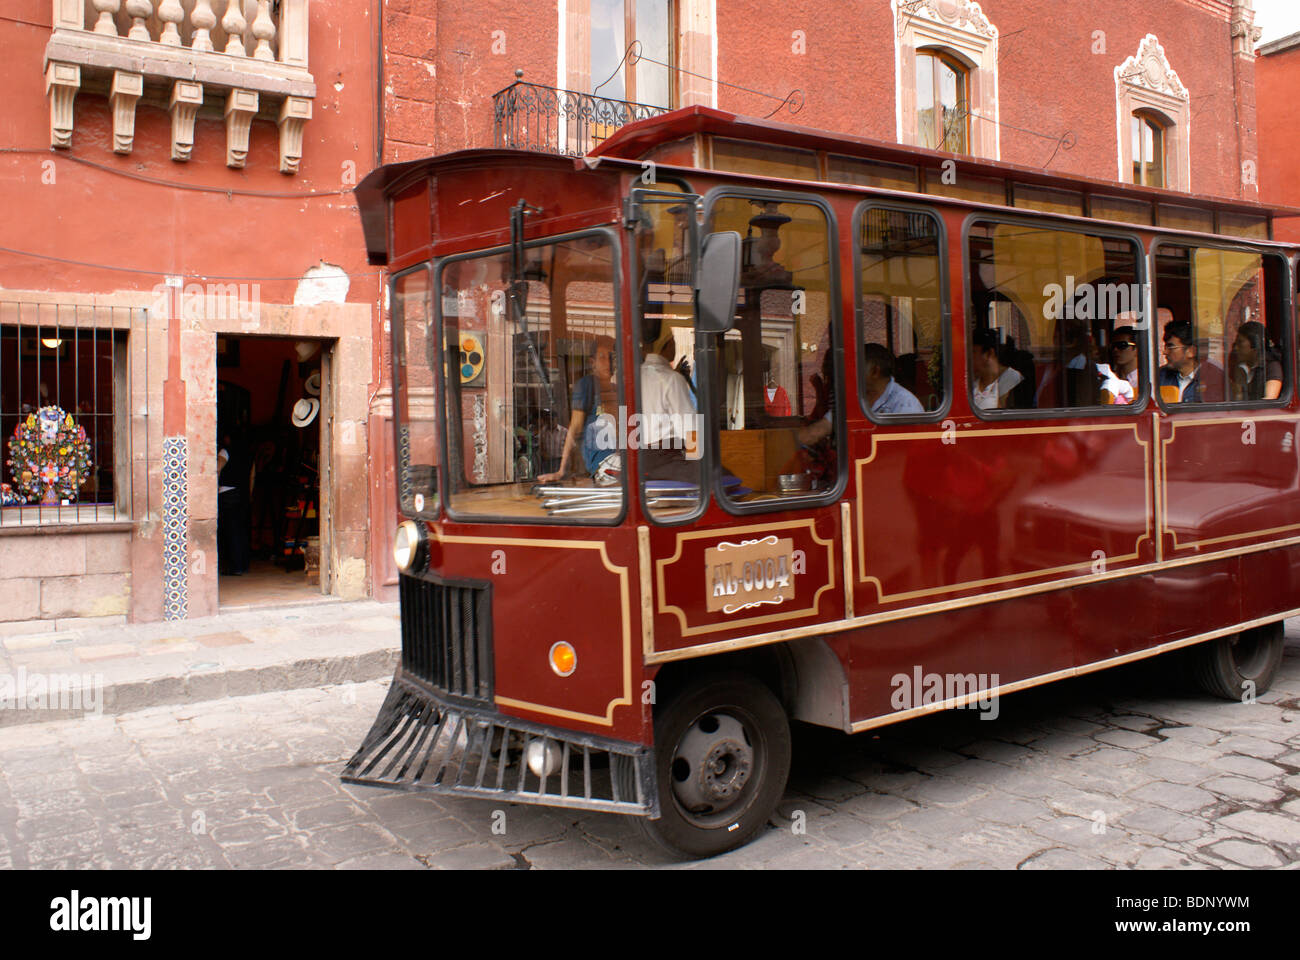 Sightseeing trolley bus on a street in San Miguel de Allende, Guanajuato, Mexico - Stock Image